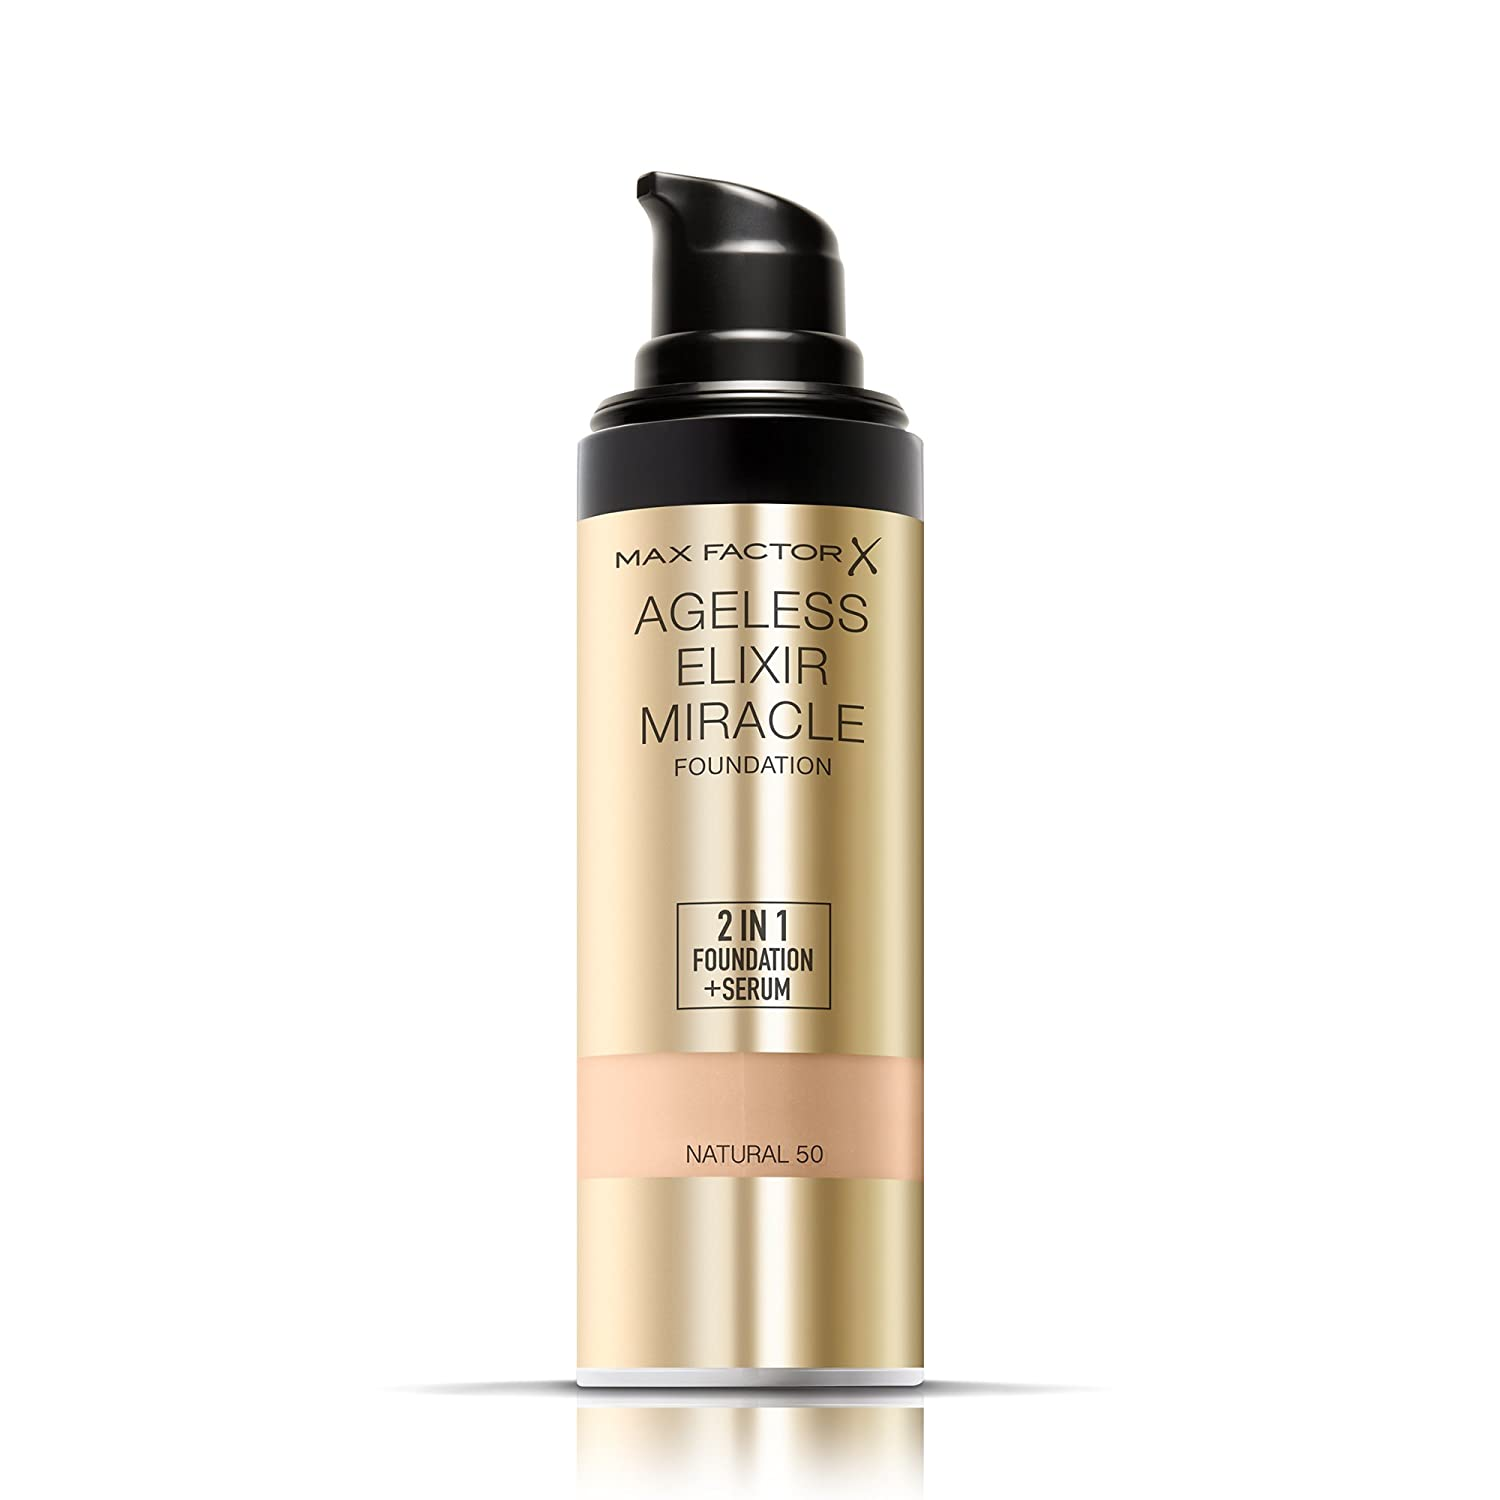 Max factor foundation for mature skin